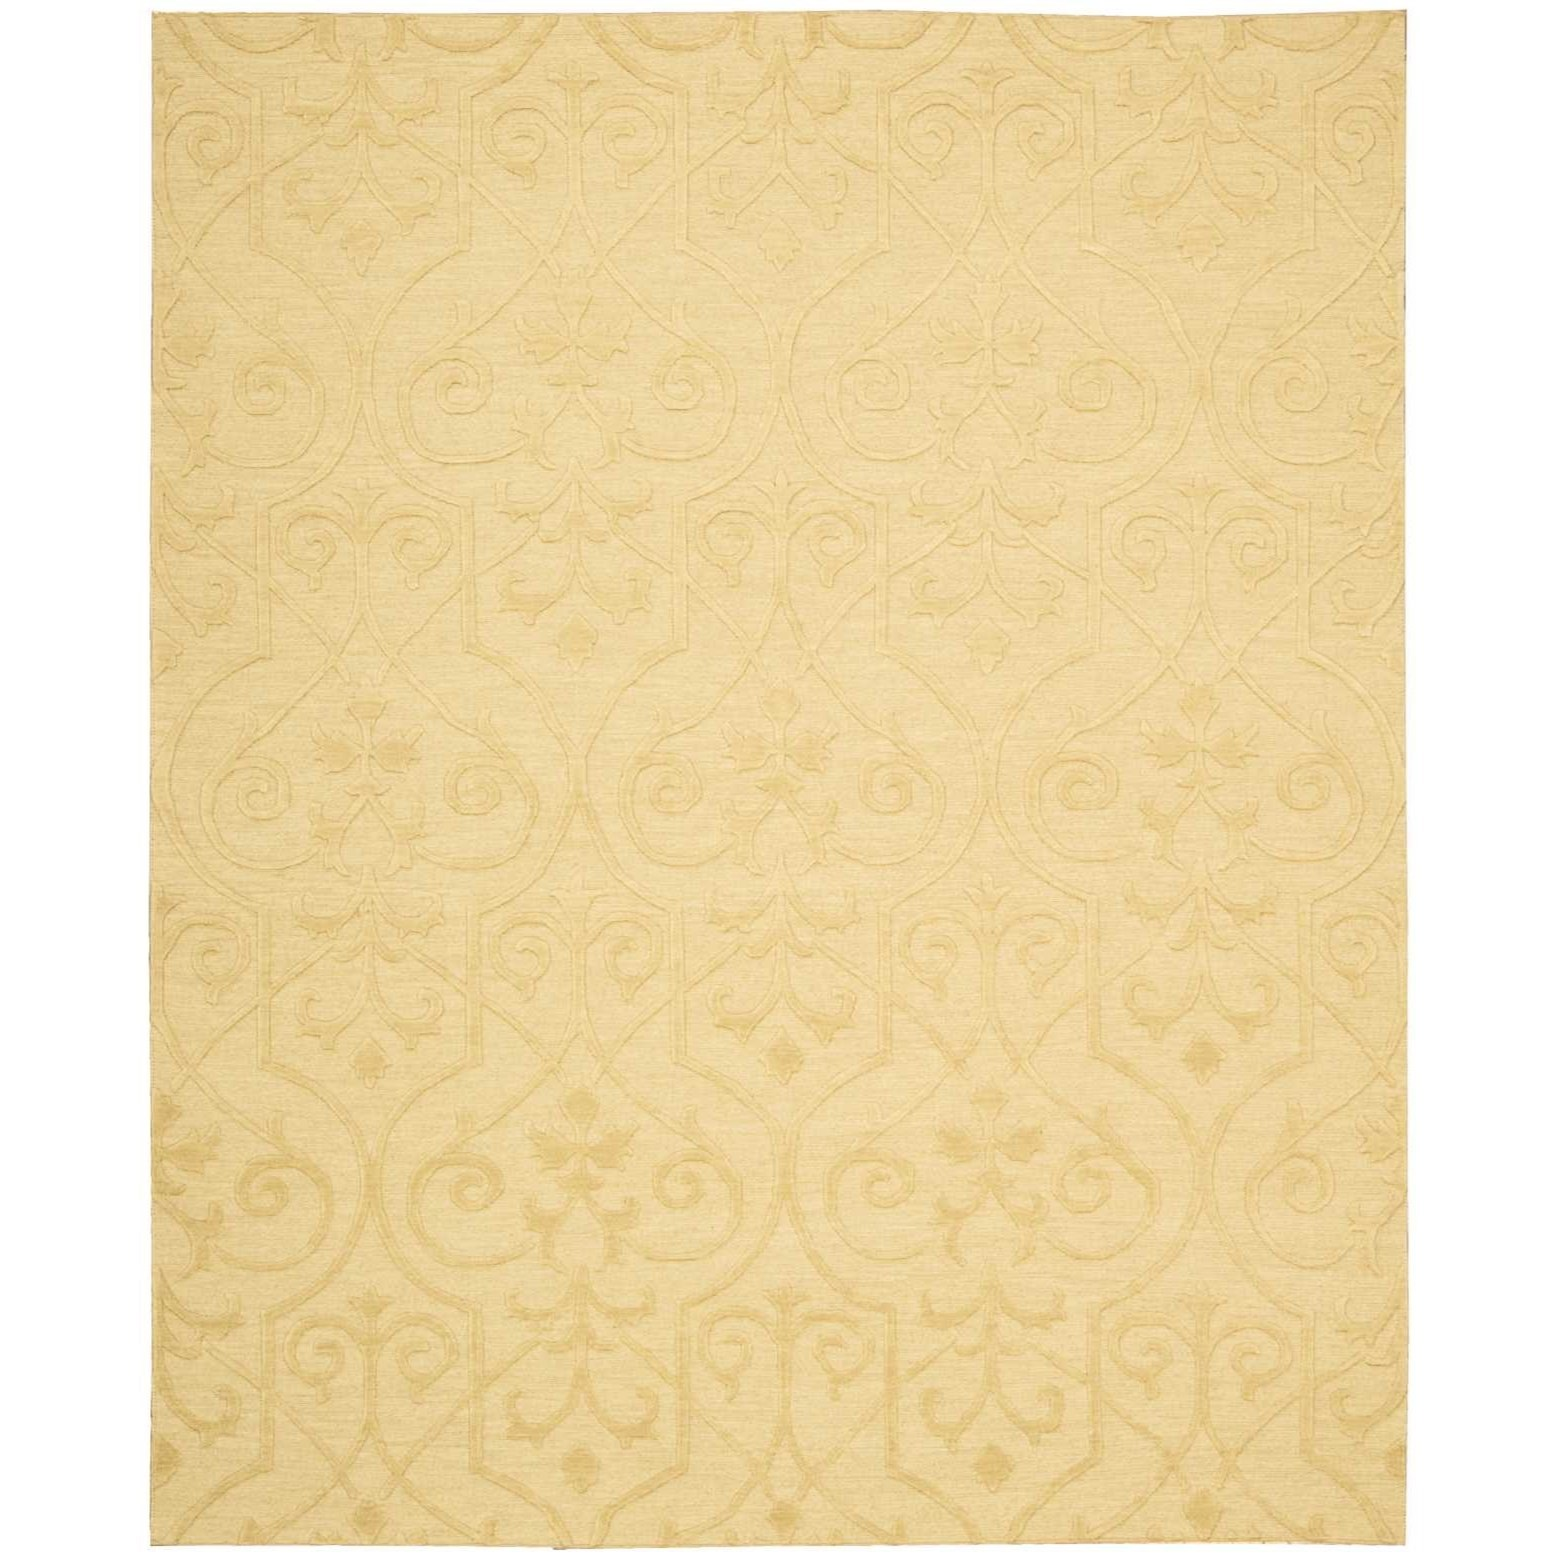 """Ambrose 9'9"""" x 13'9"""" Straw Rectangle Rug by Nourison at Sprintz Furniture"""